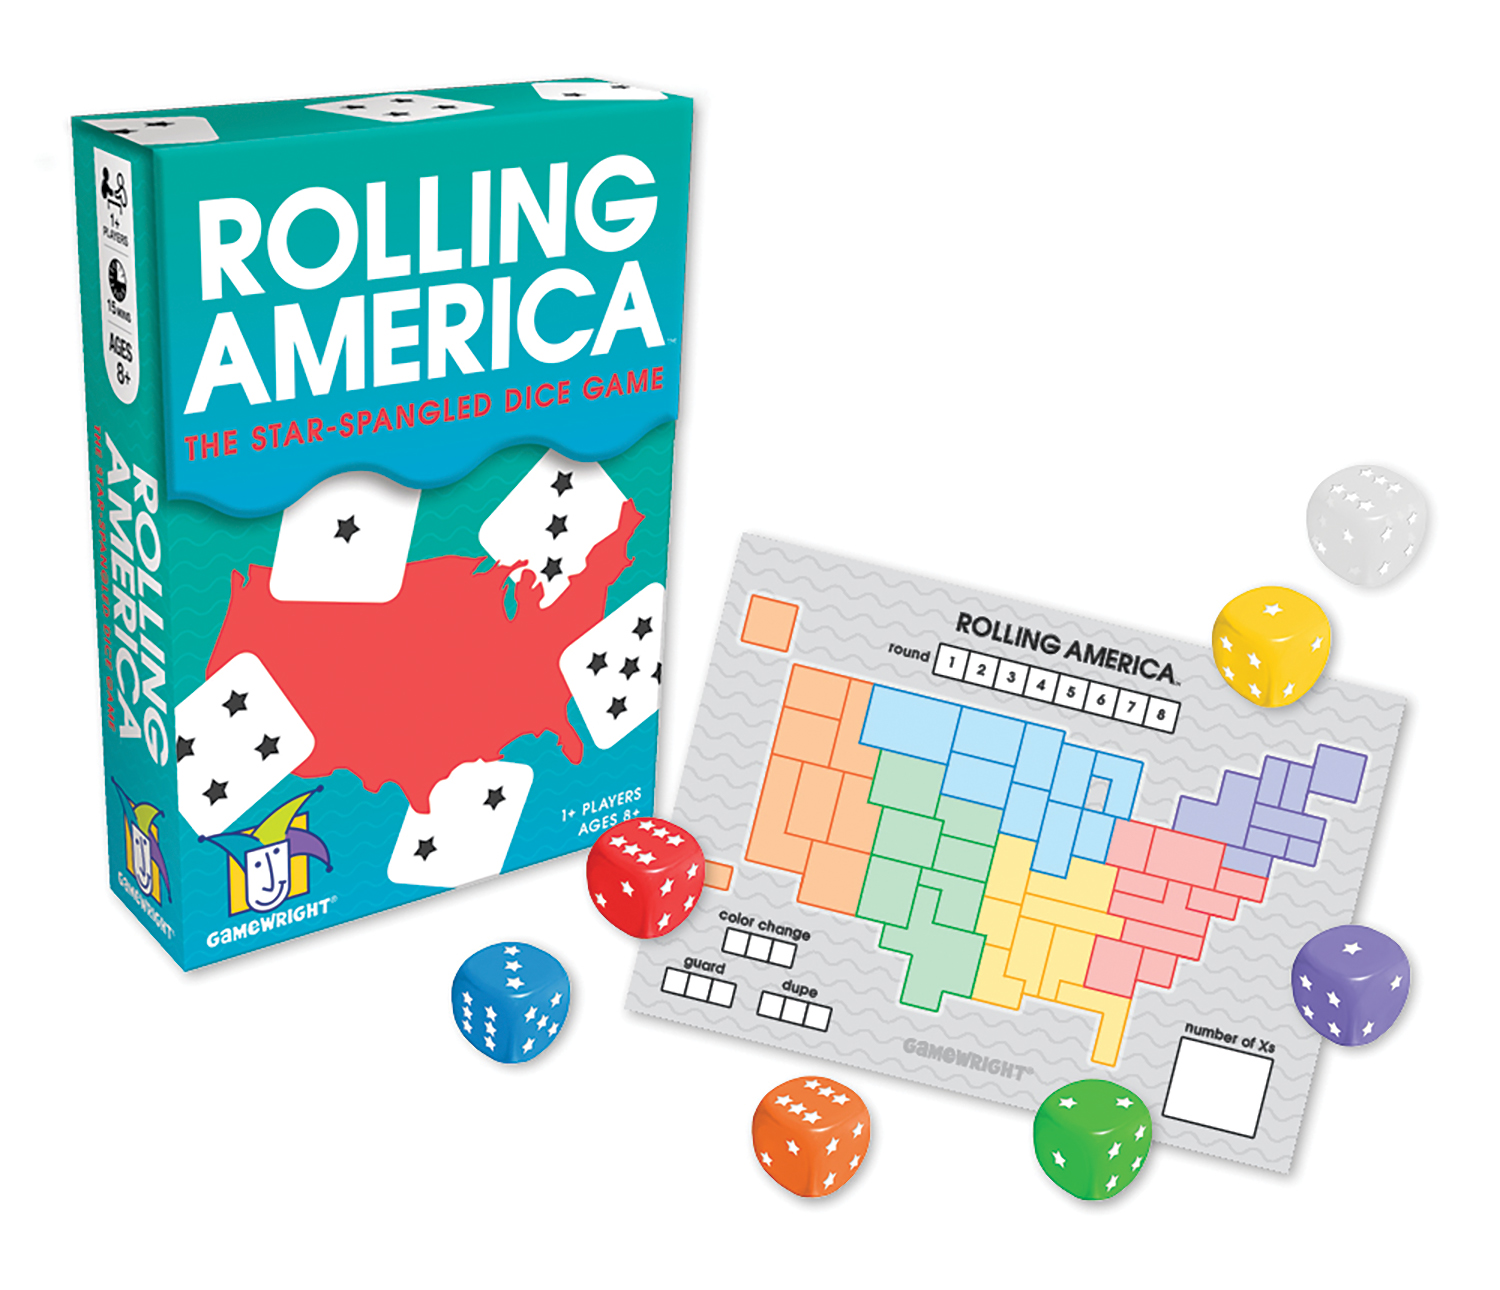 Circuit Maze The Roarbots Thinkfun Rolling America Star Spangled Dice Game